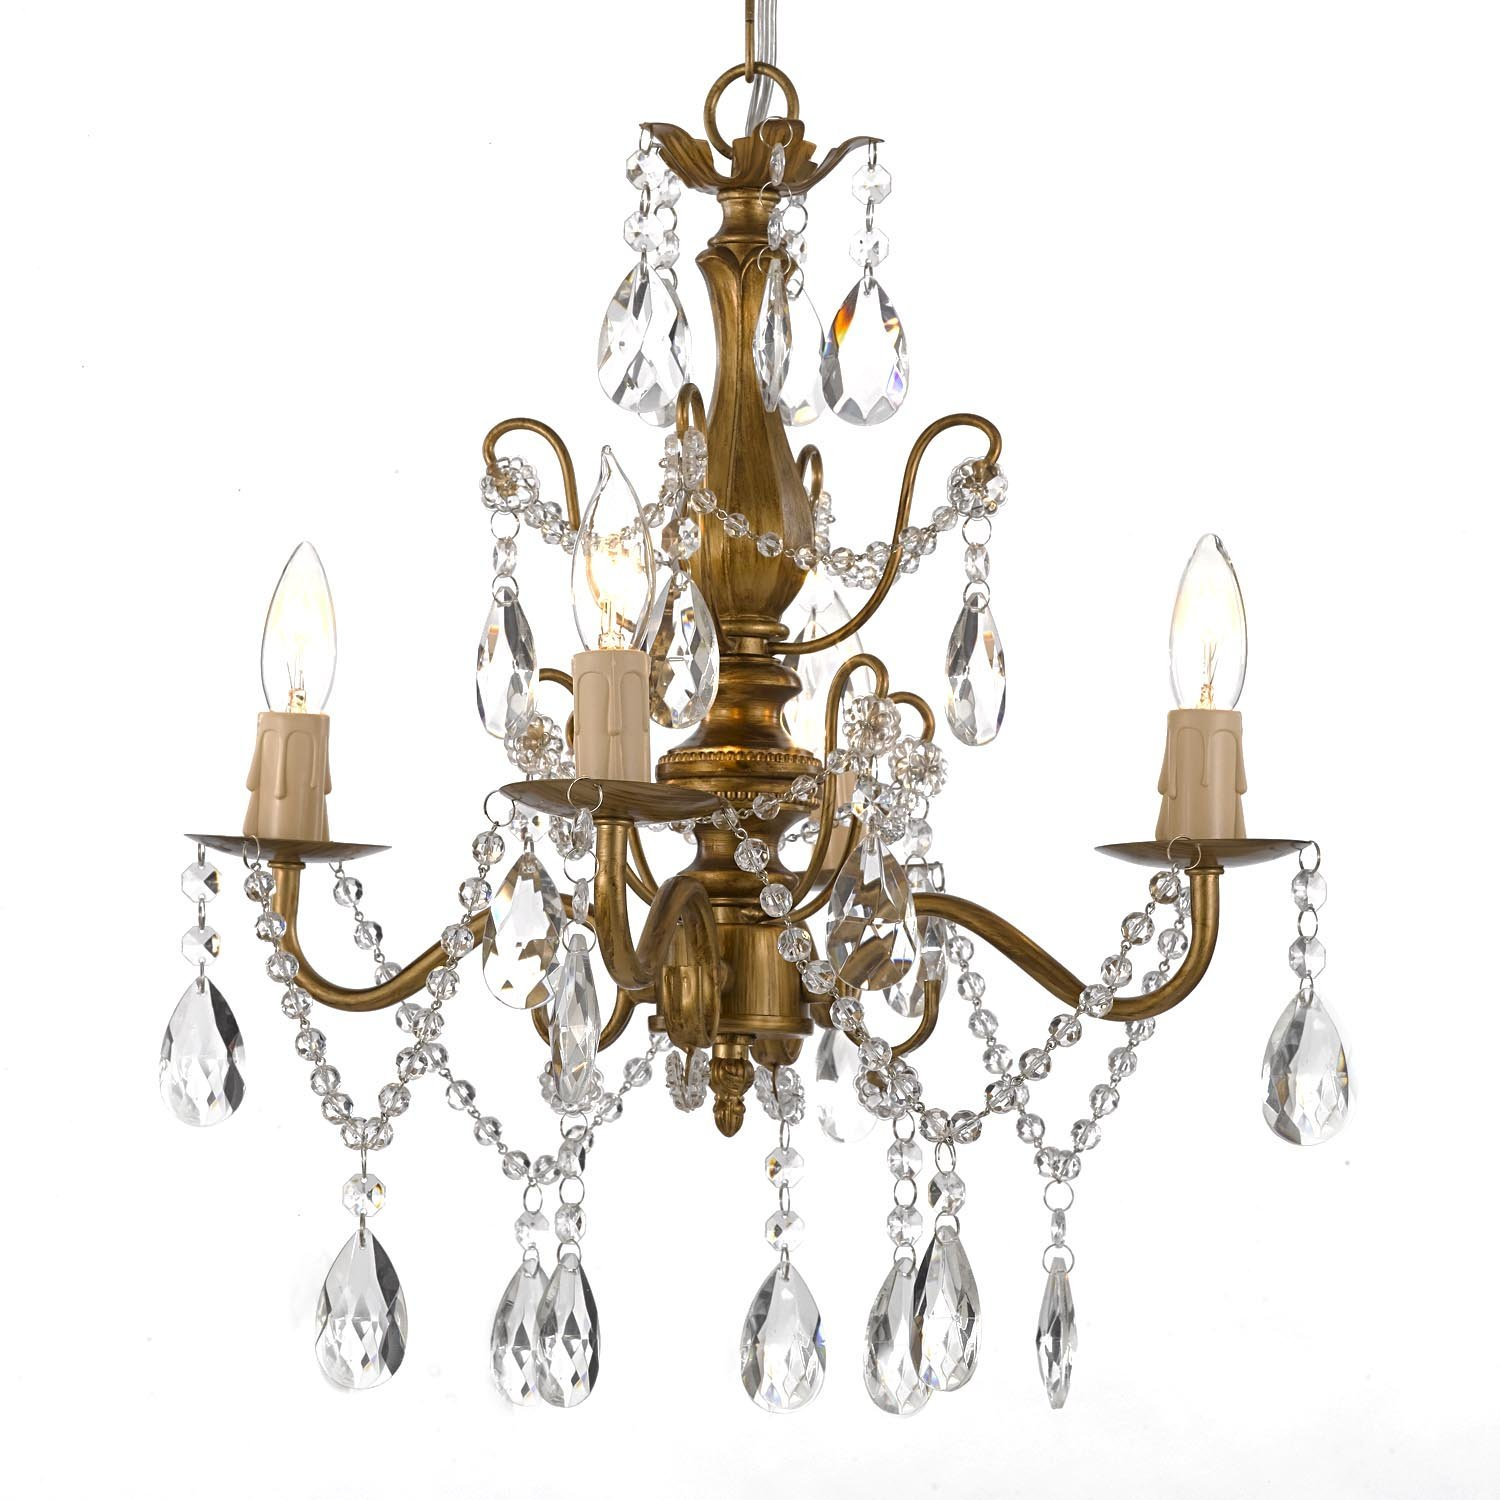 Mini vintage style brass gold crystal chandelier - hard wire or plug in